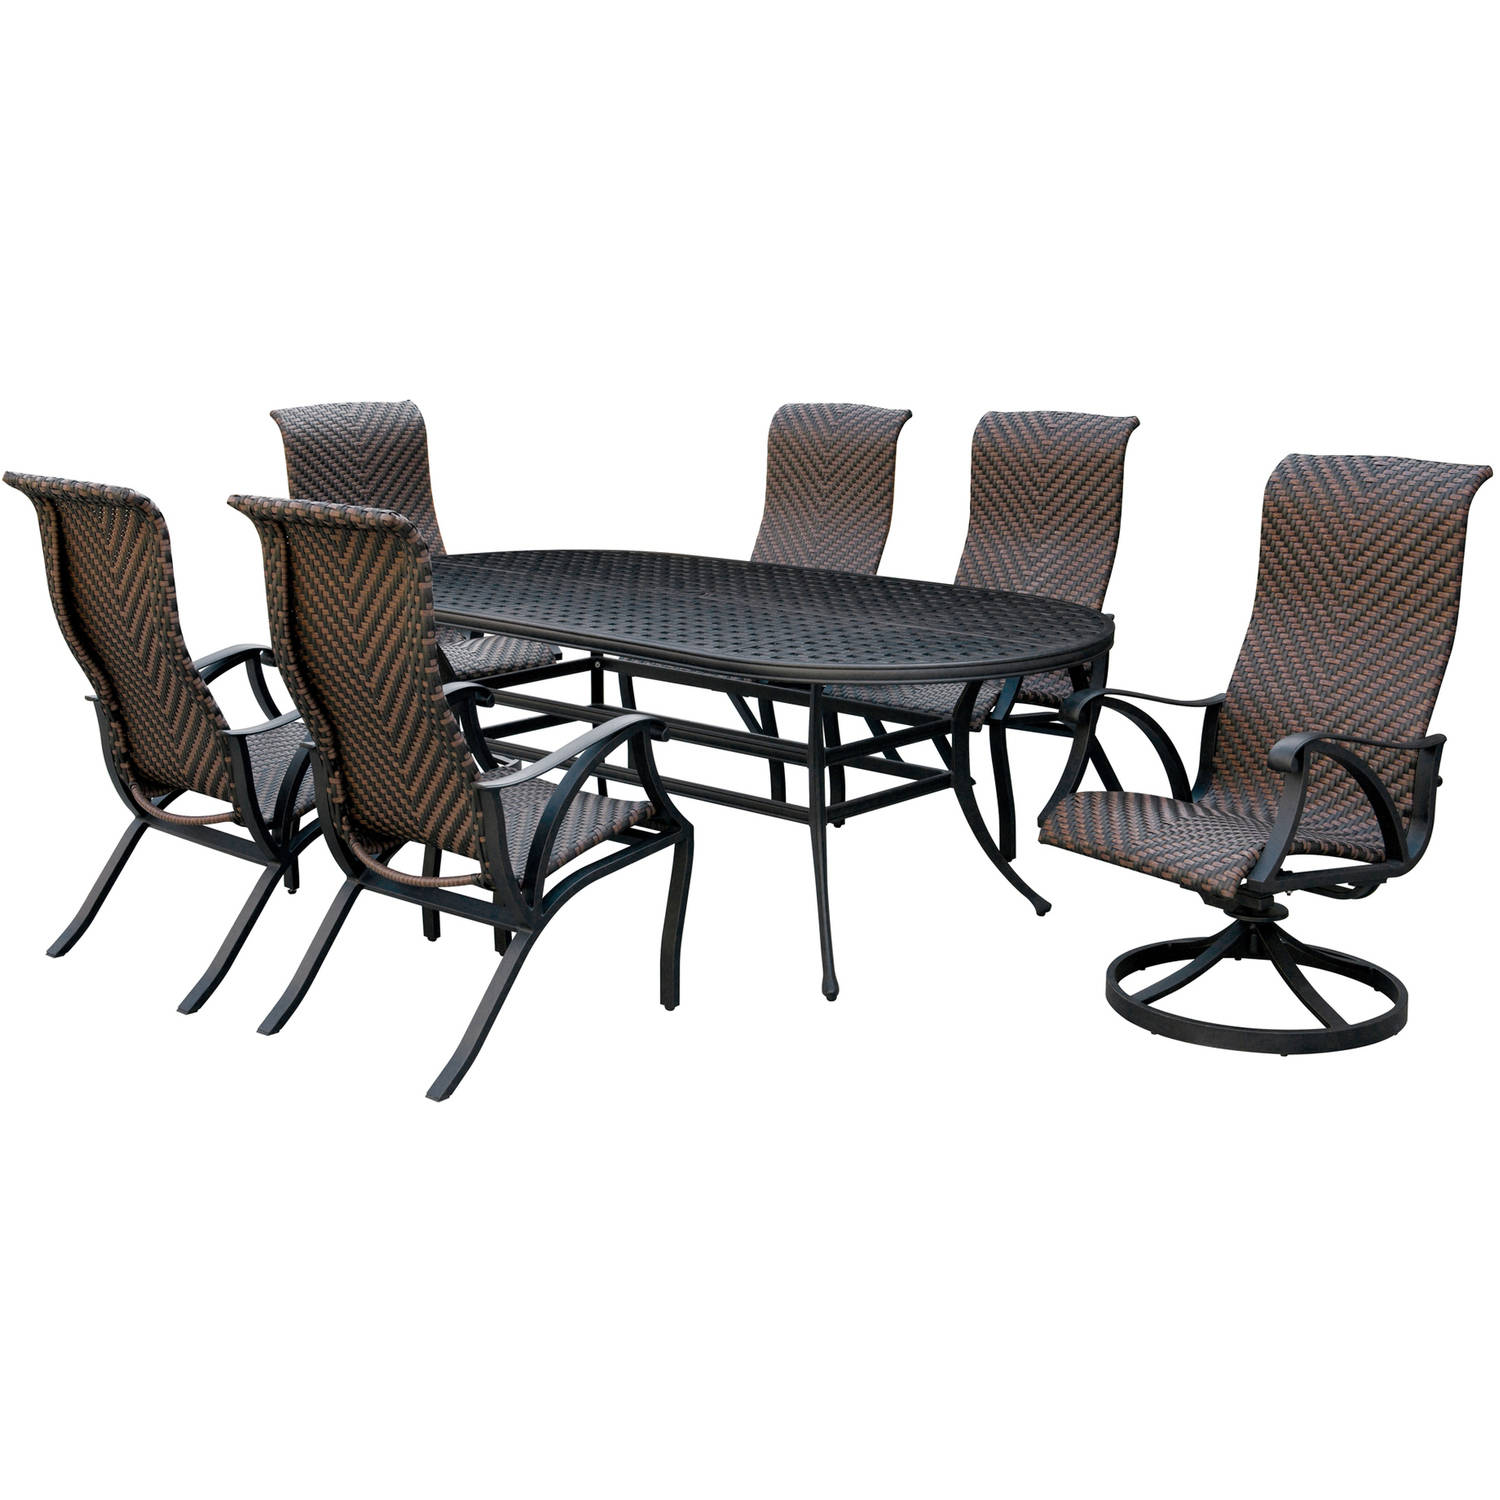 Furniture of America Trevie II Oval 7-Piece Patio Dining Room Set, Dark Bronze by Furniture of America